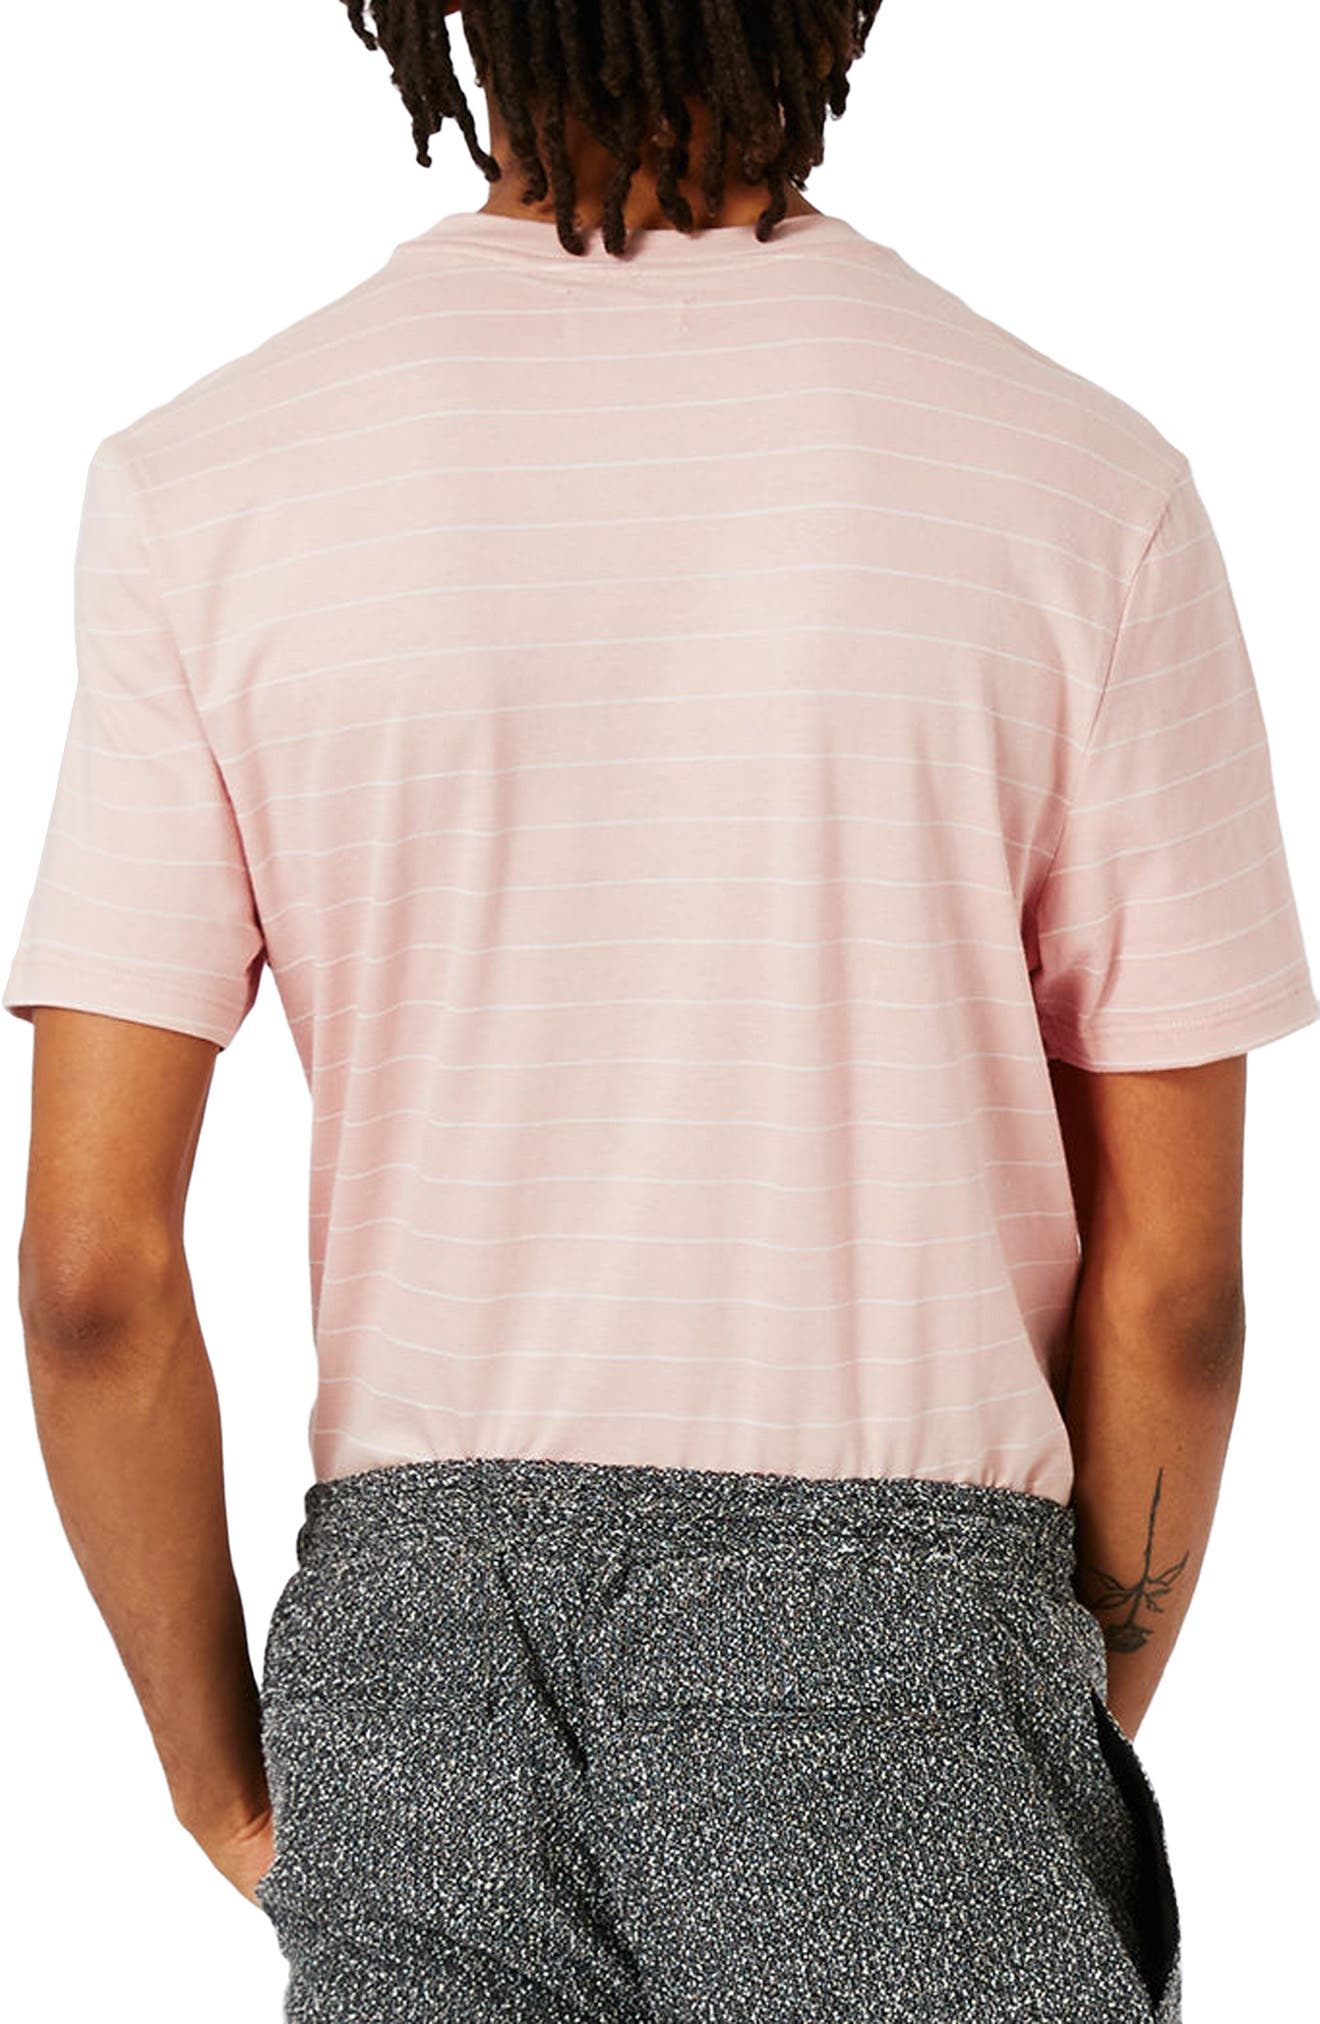 Alternate Image 3  - Topman Slim Fit Stripe T-Shirt